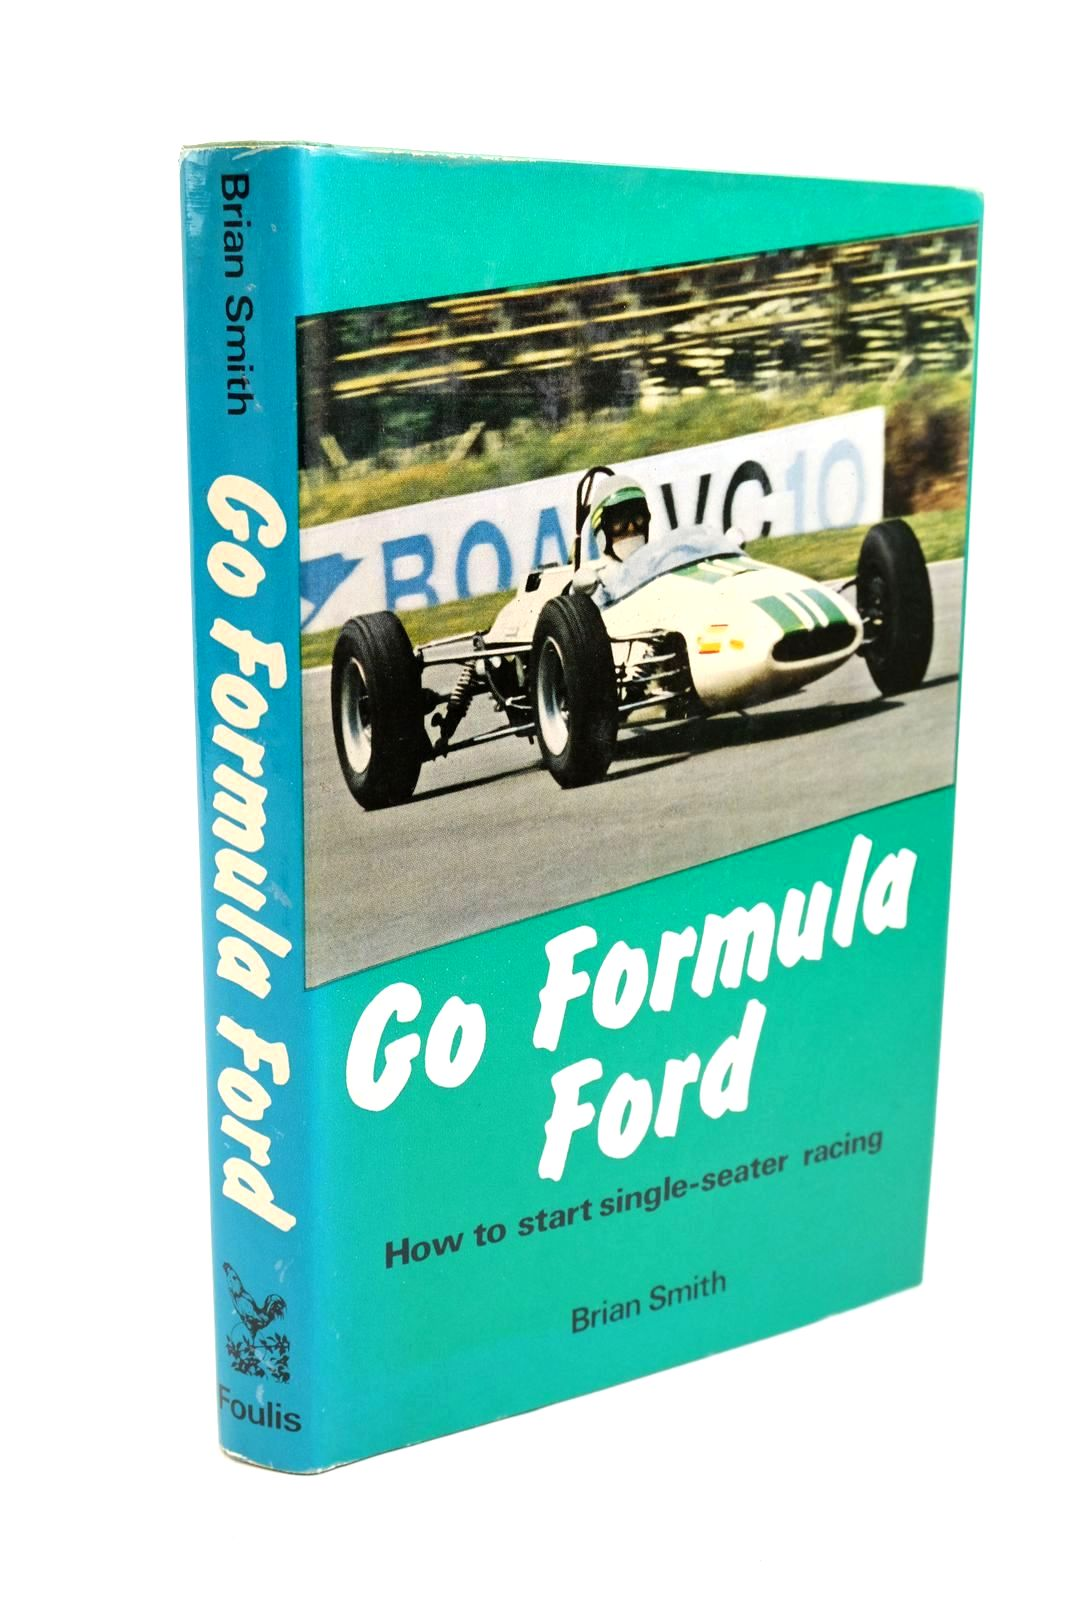 Photo of GO FORMULA FORD HOW TO START SINGLE-SEATER RACING written by Smith, Brian published by G.T. Foulis & Co. Ltd. (STOCK CODE: 1321243)  for sale by Stella & Rose's Books